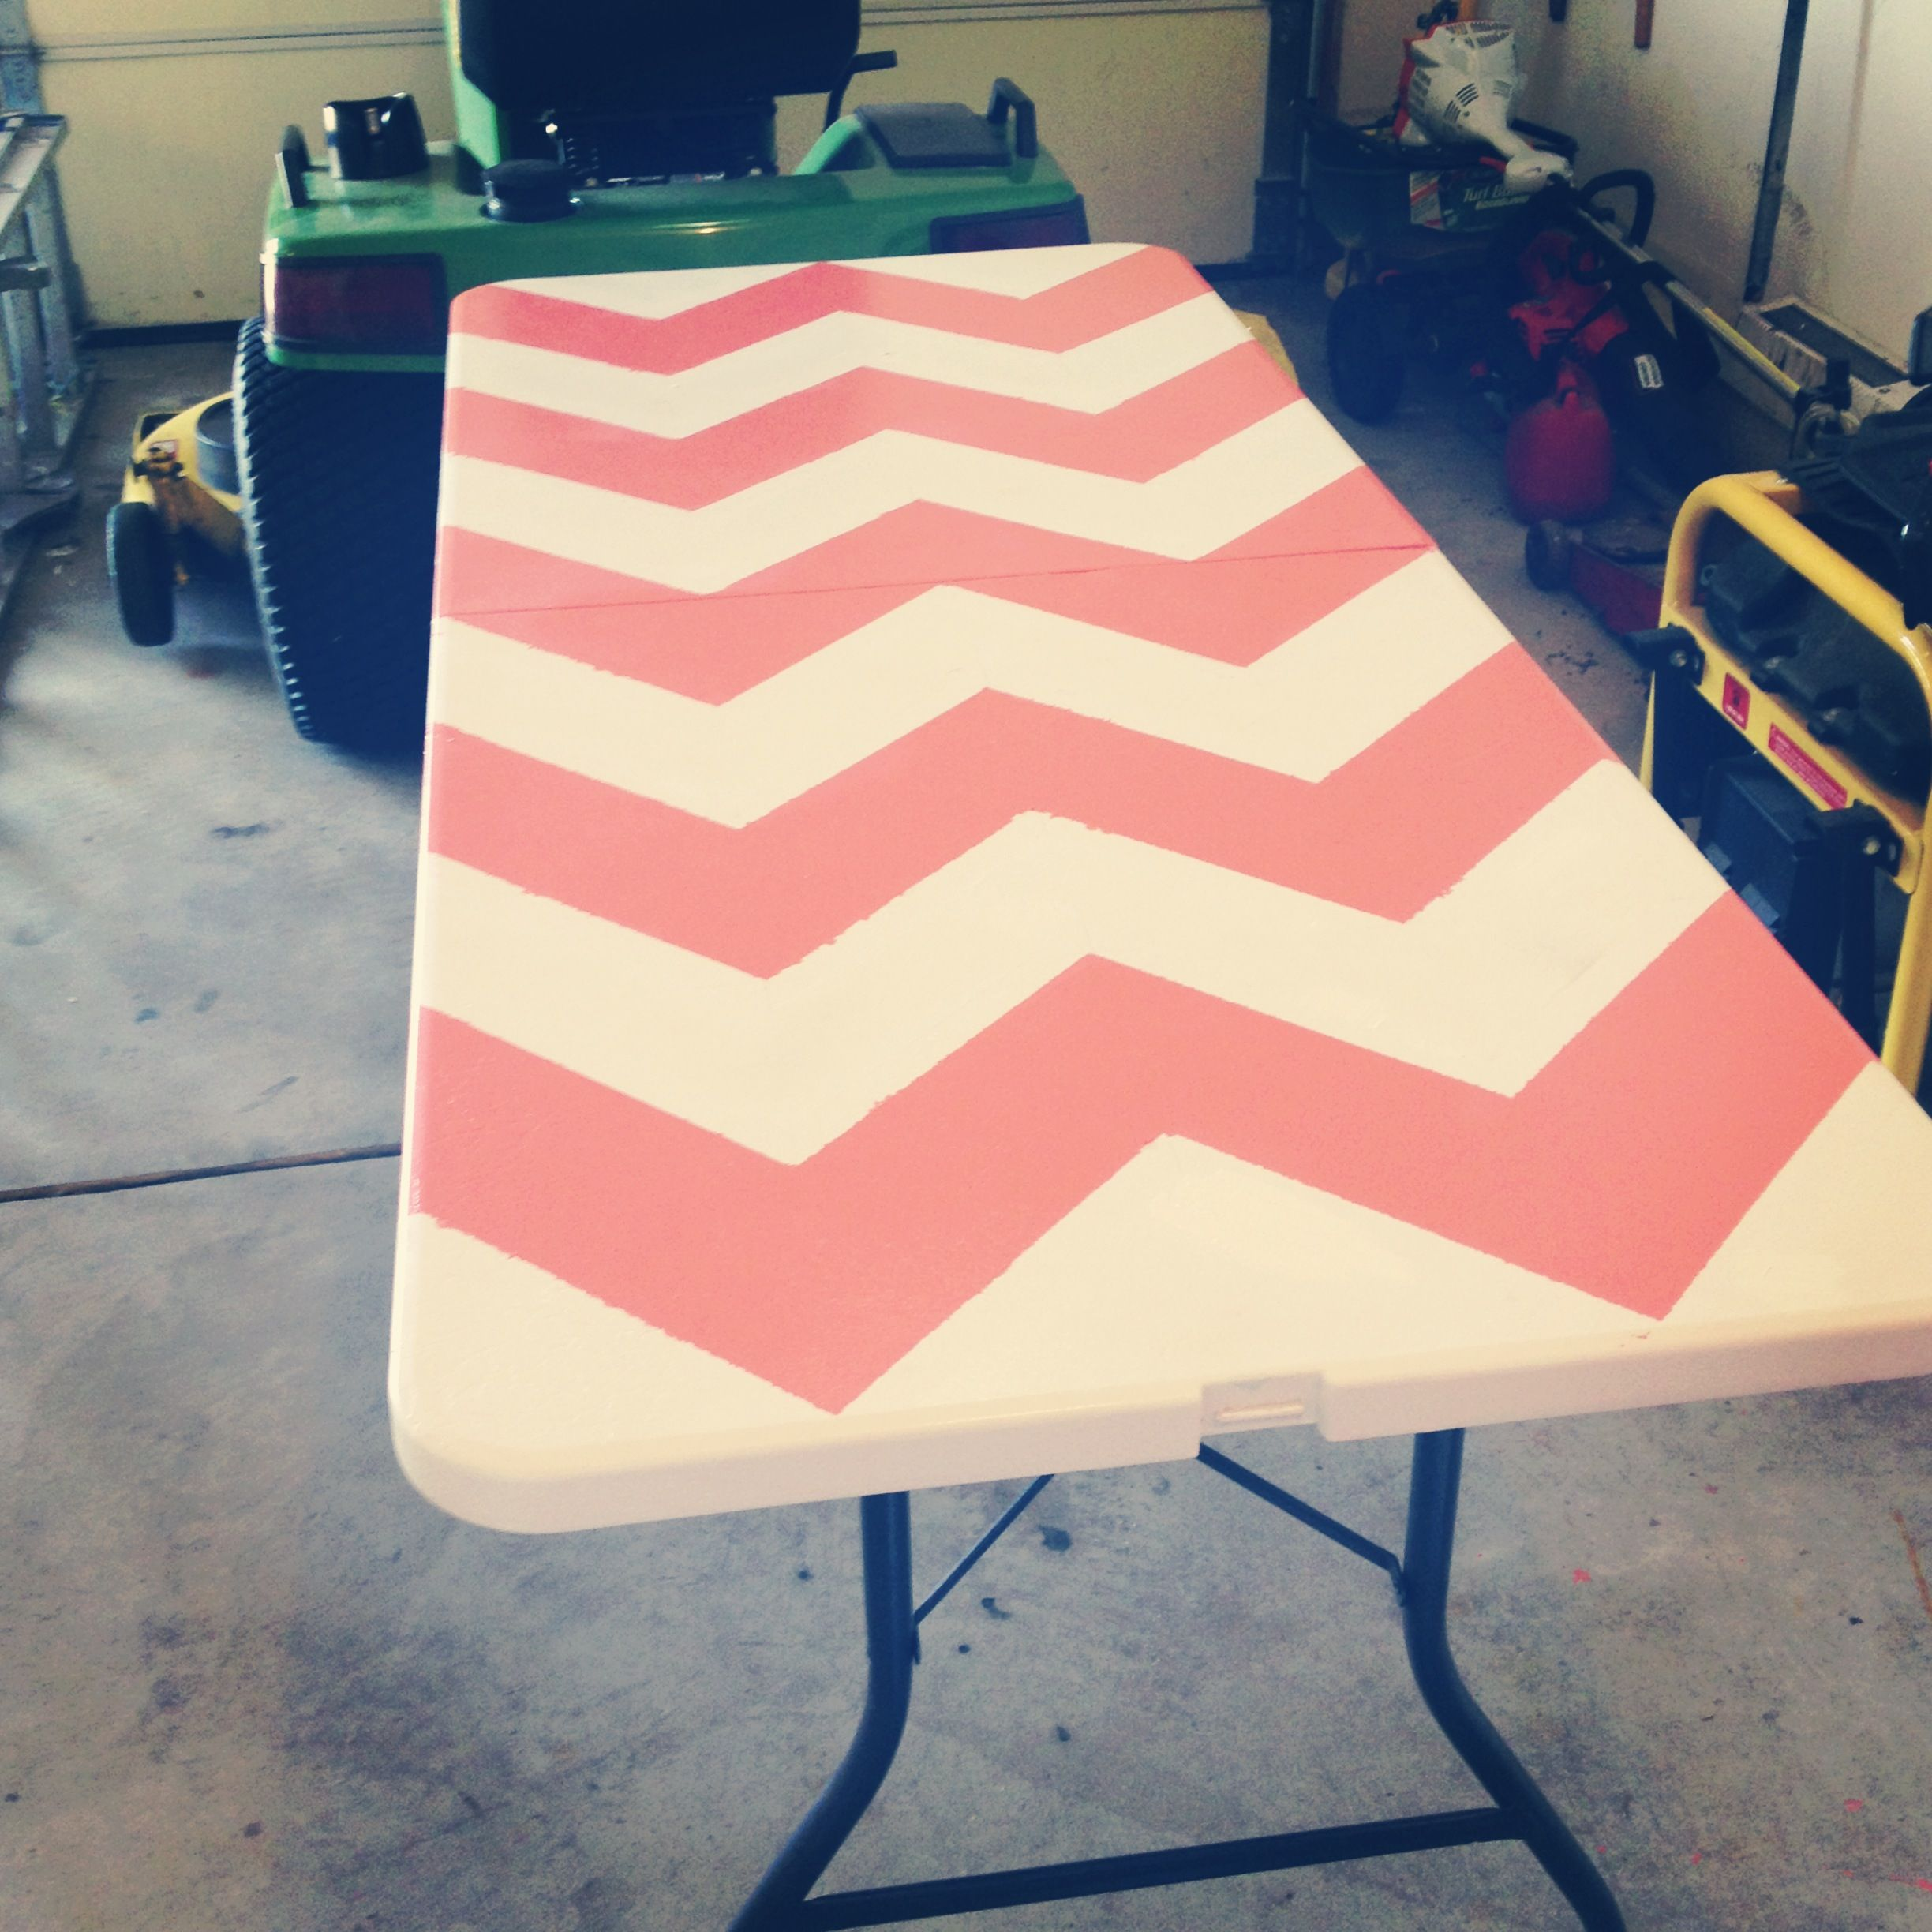 Chevron beer pong table! Beer pong tables